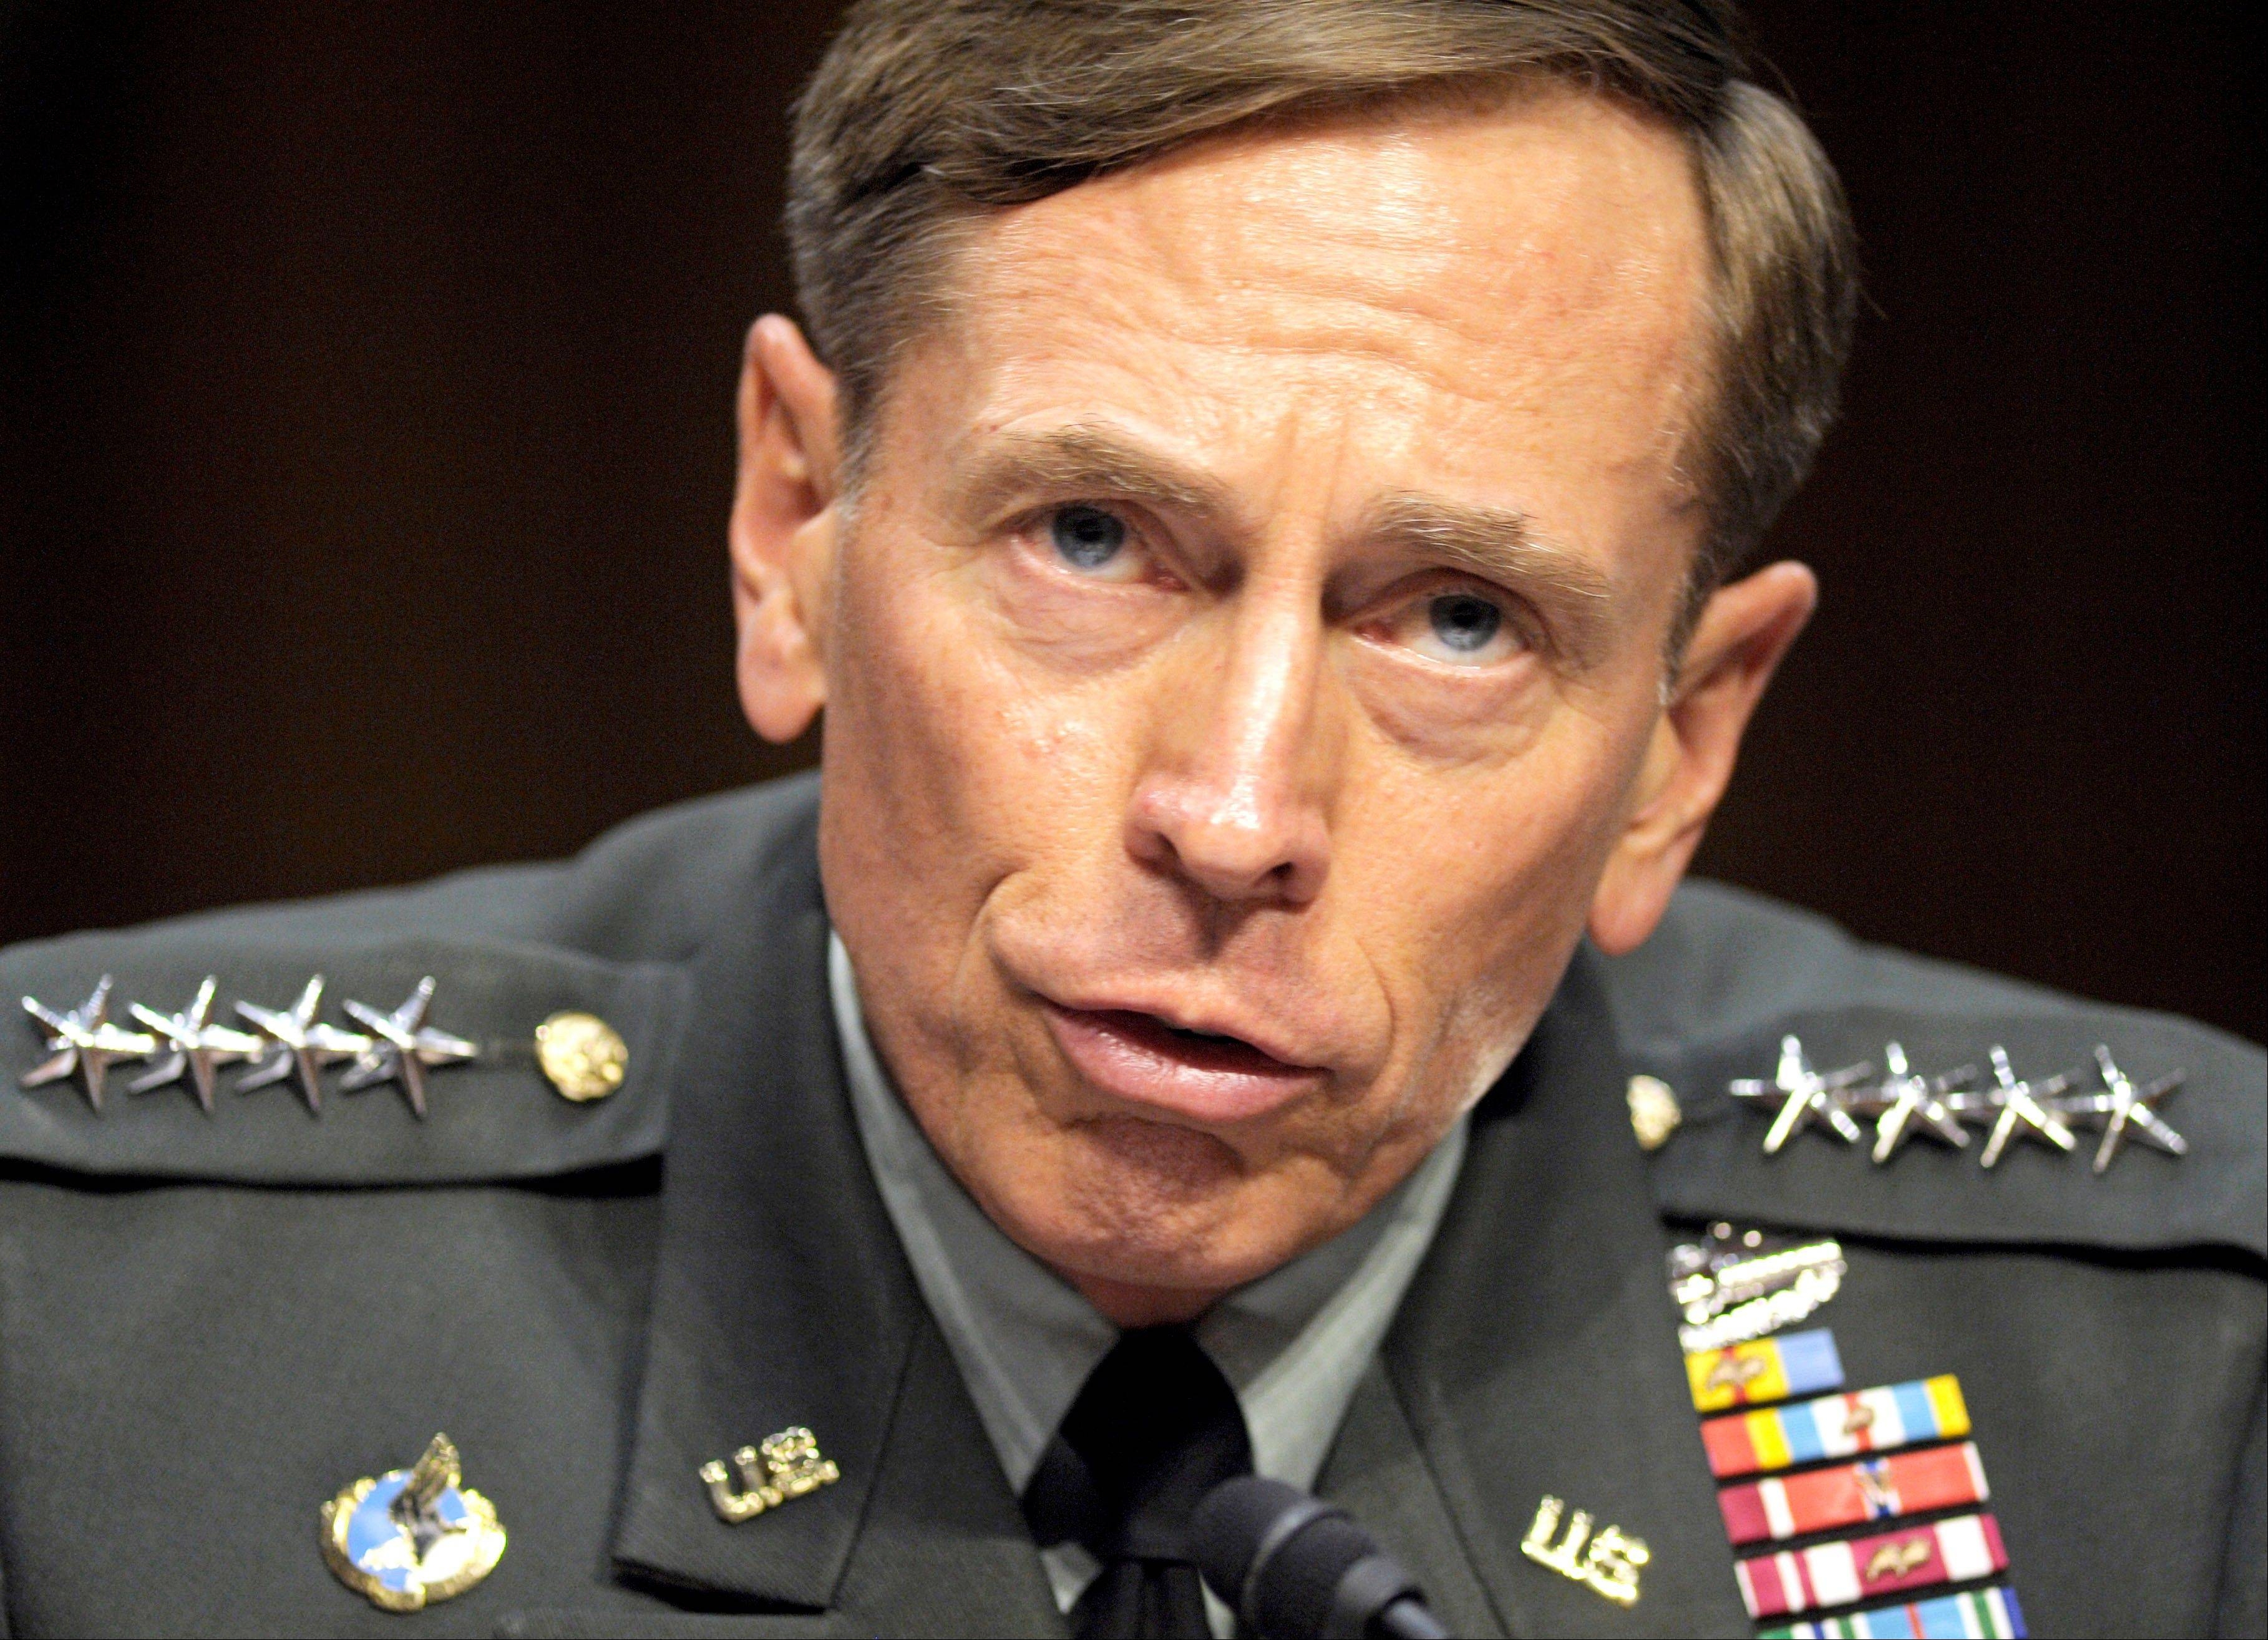 Admitting to affair, Petraeus resigns as CIA chief